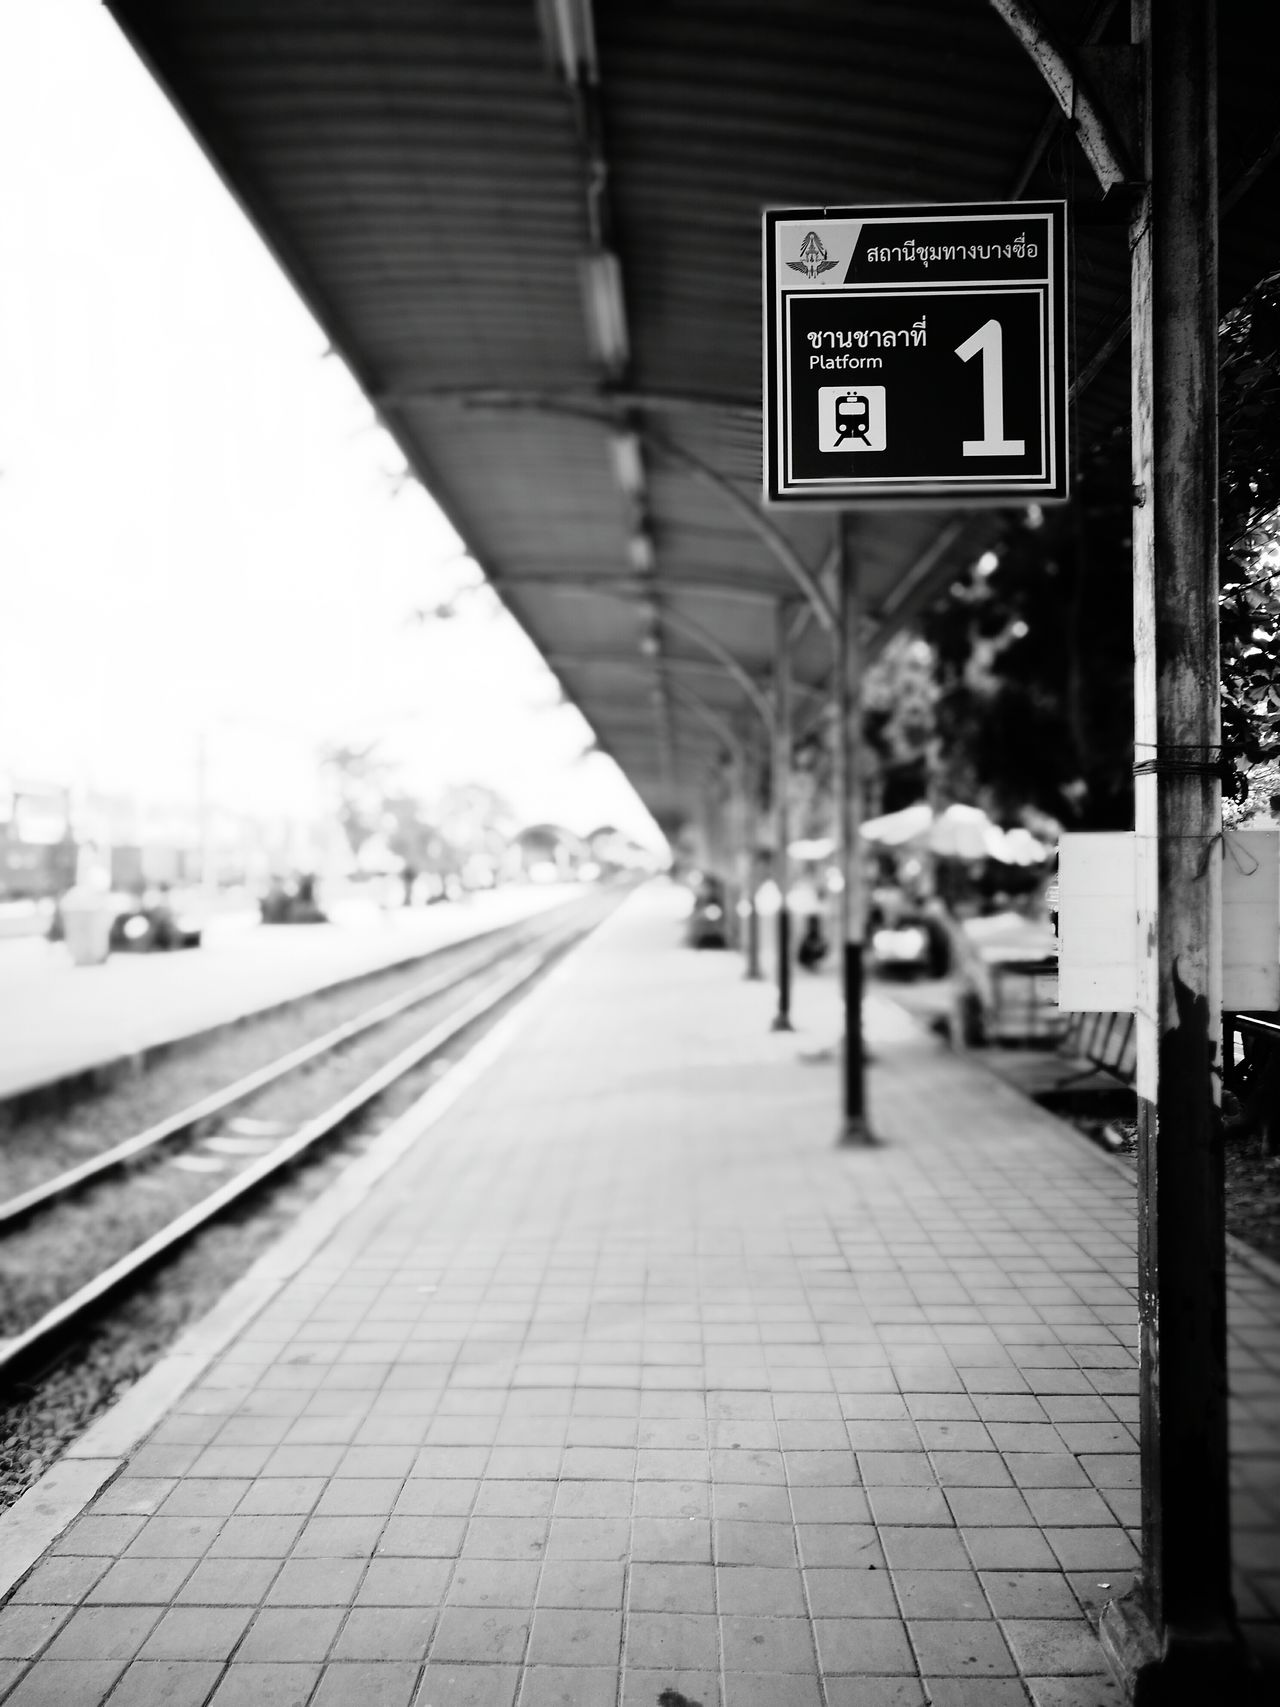 Focus On Foreground Travel Built Structure Exit Sign Text Railroad Station Platform Outdoors Day Road Sign Architecture People Adults Only Adult